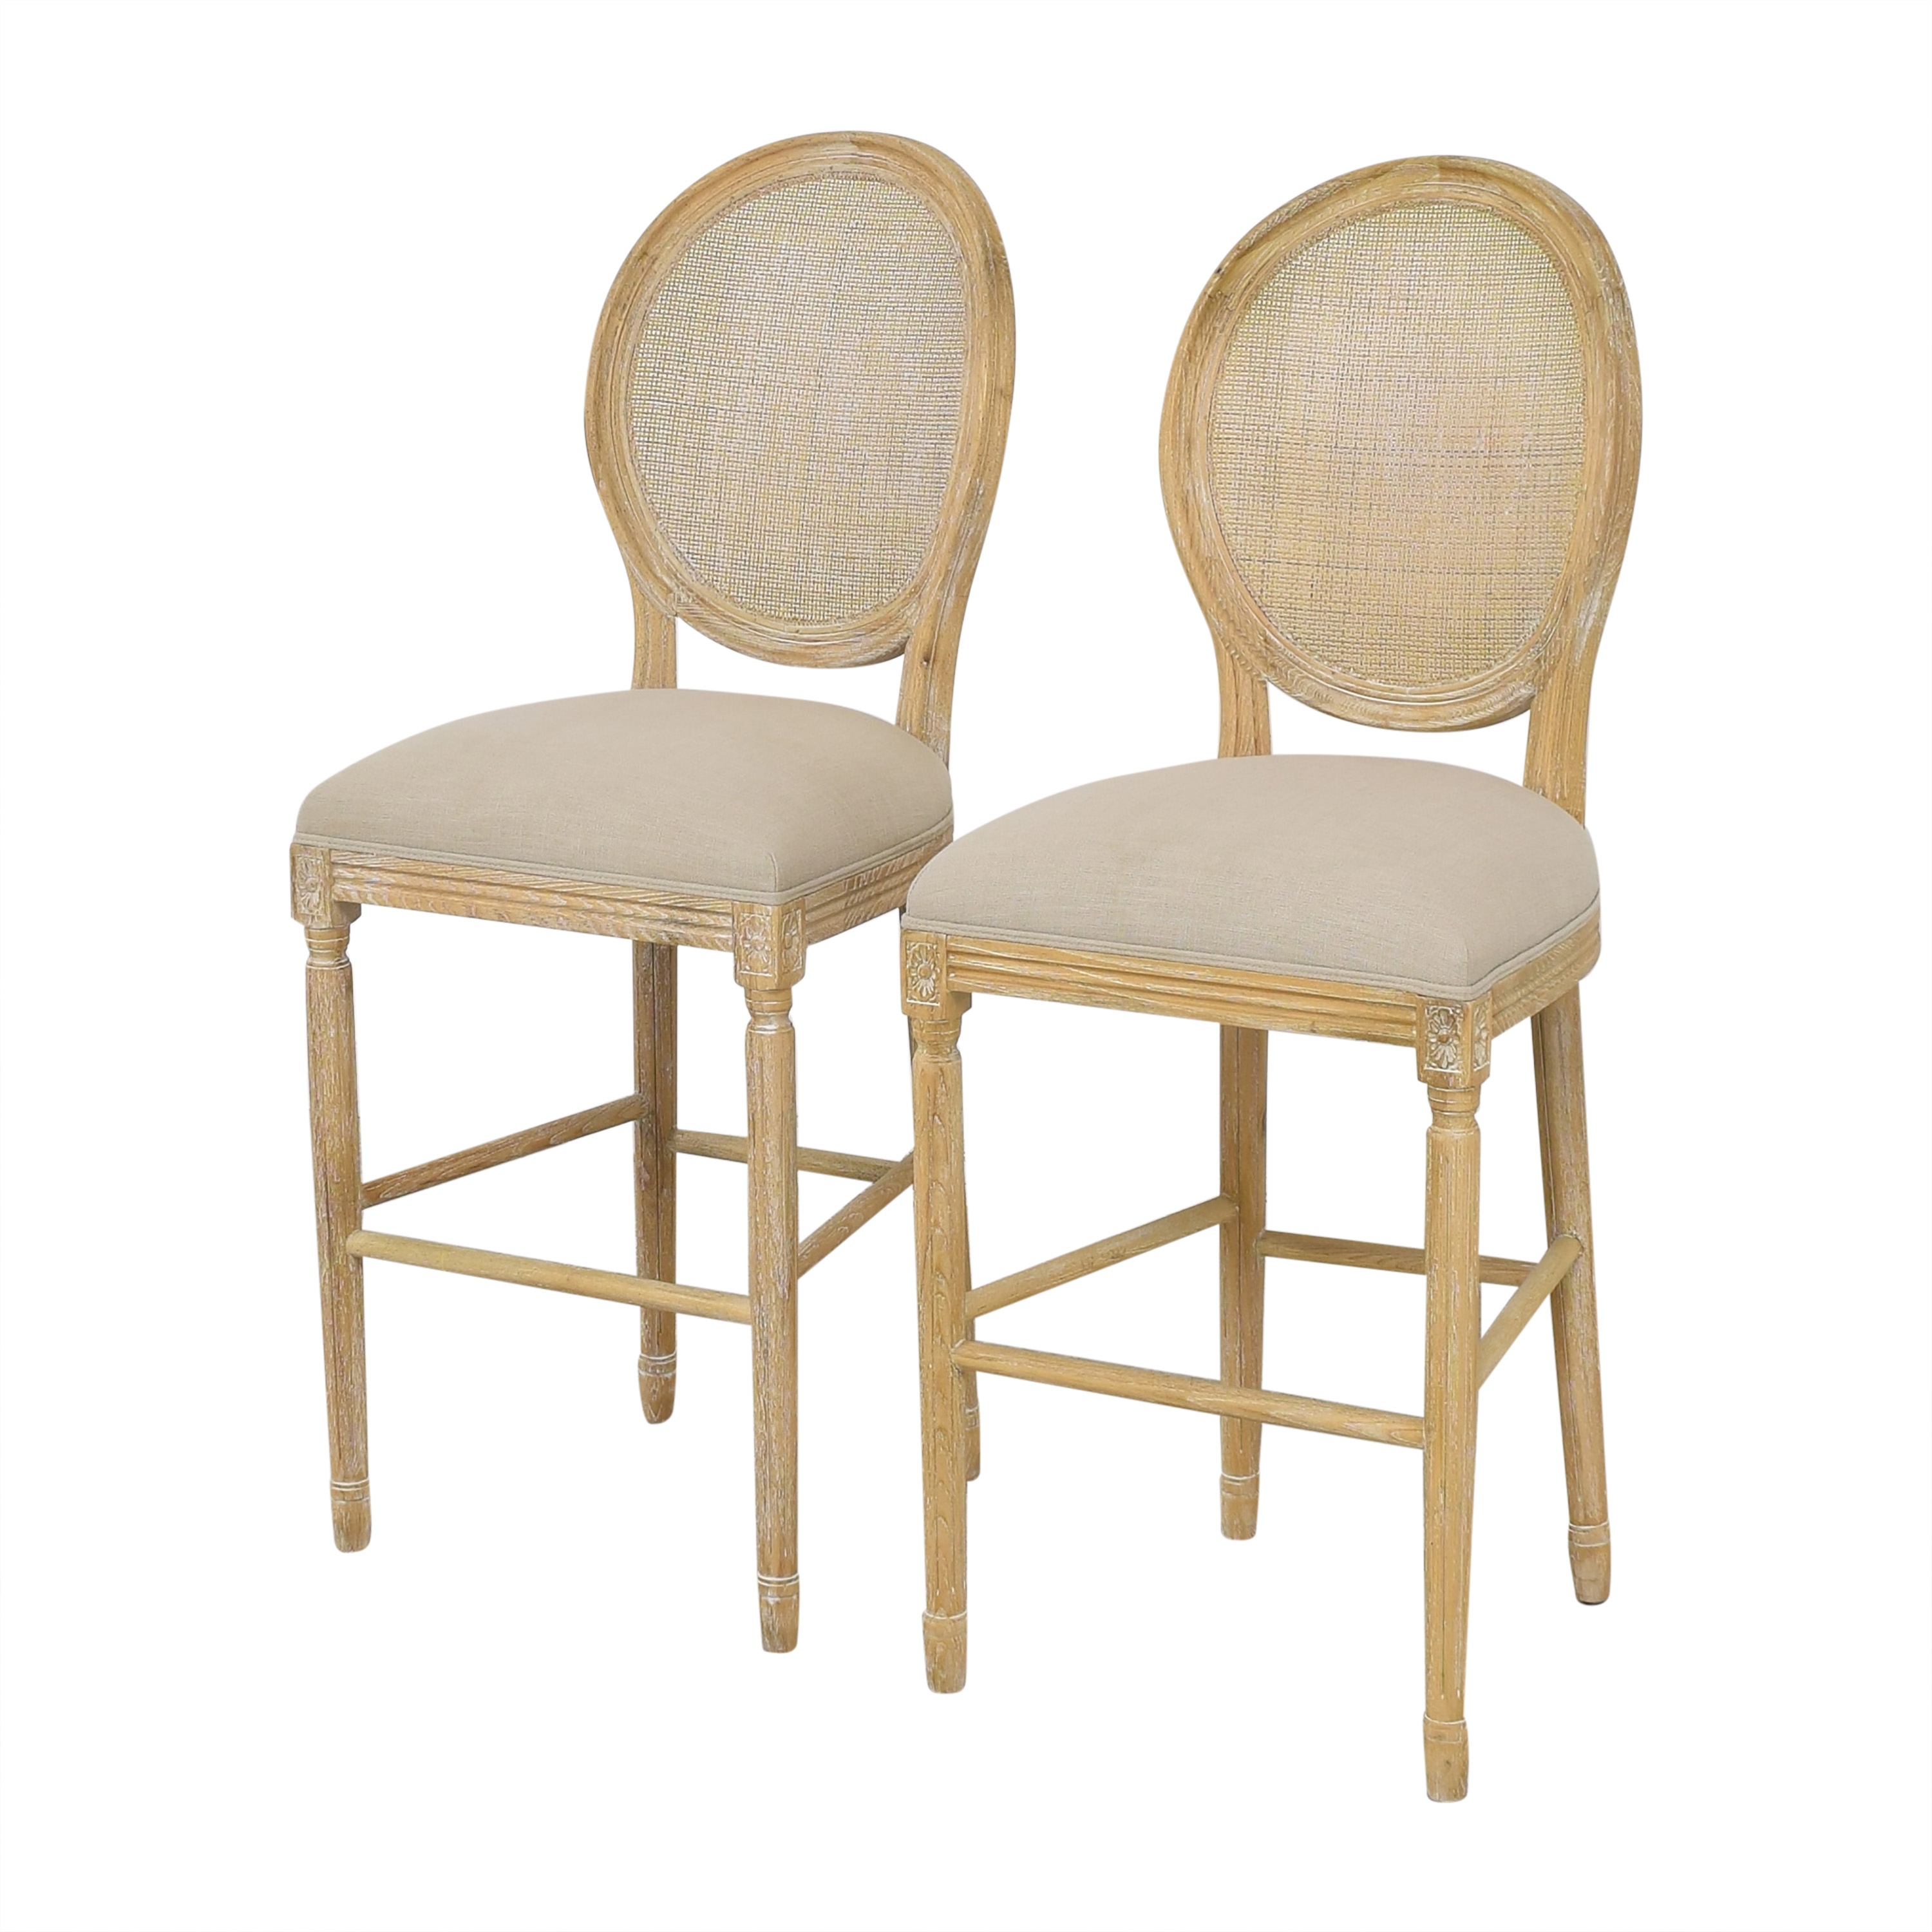 Wisteria Wisteria Upholstered Bar Stools nyc